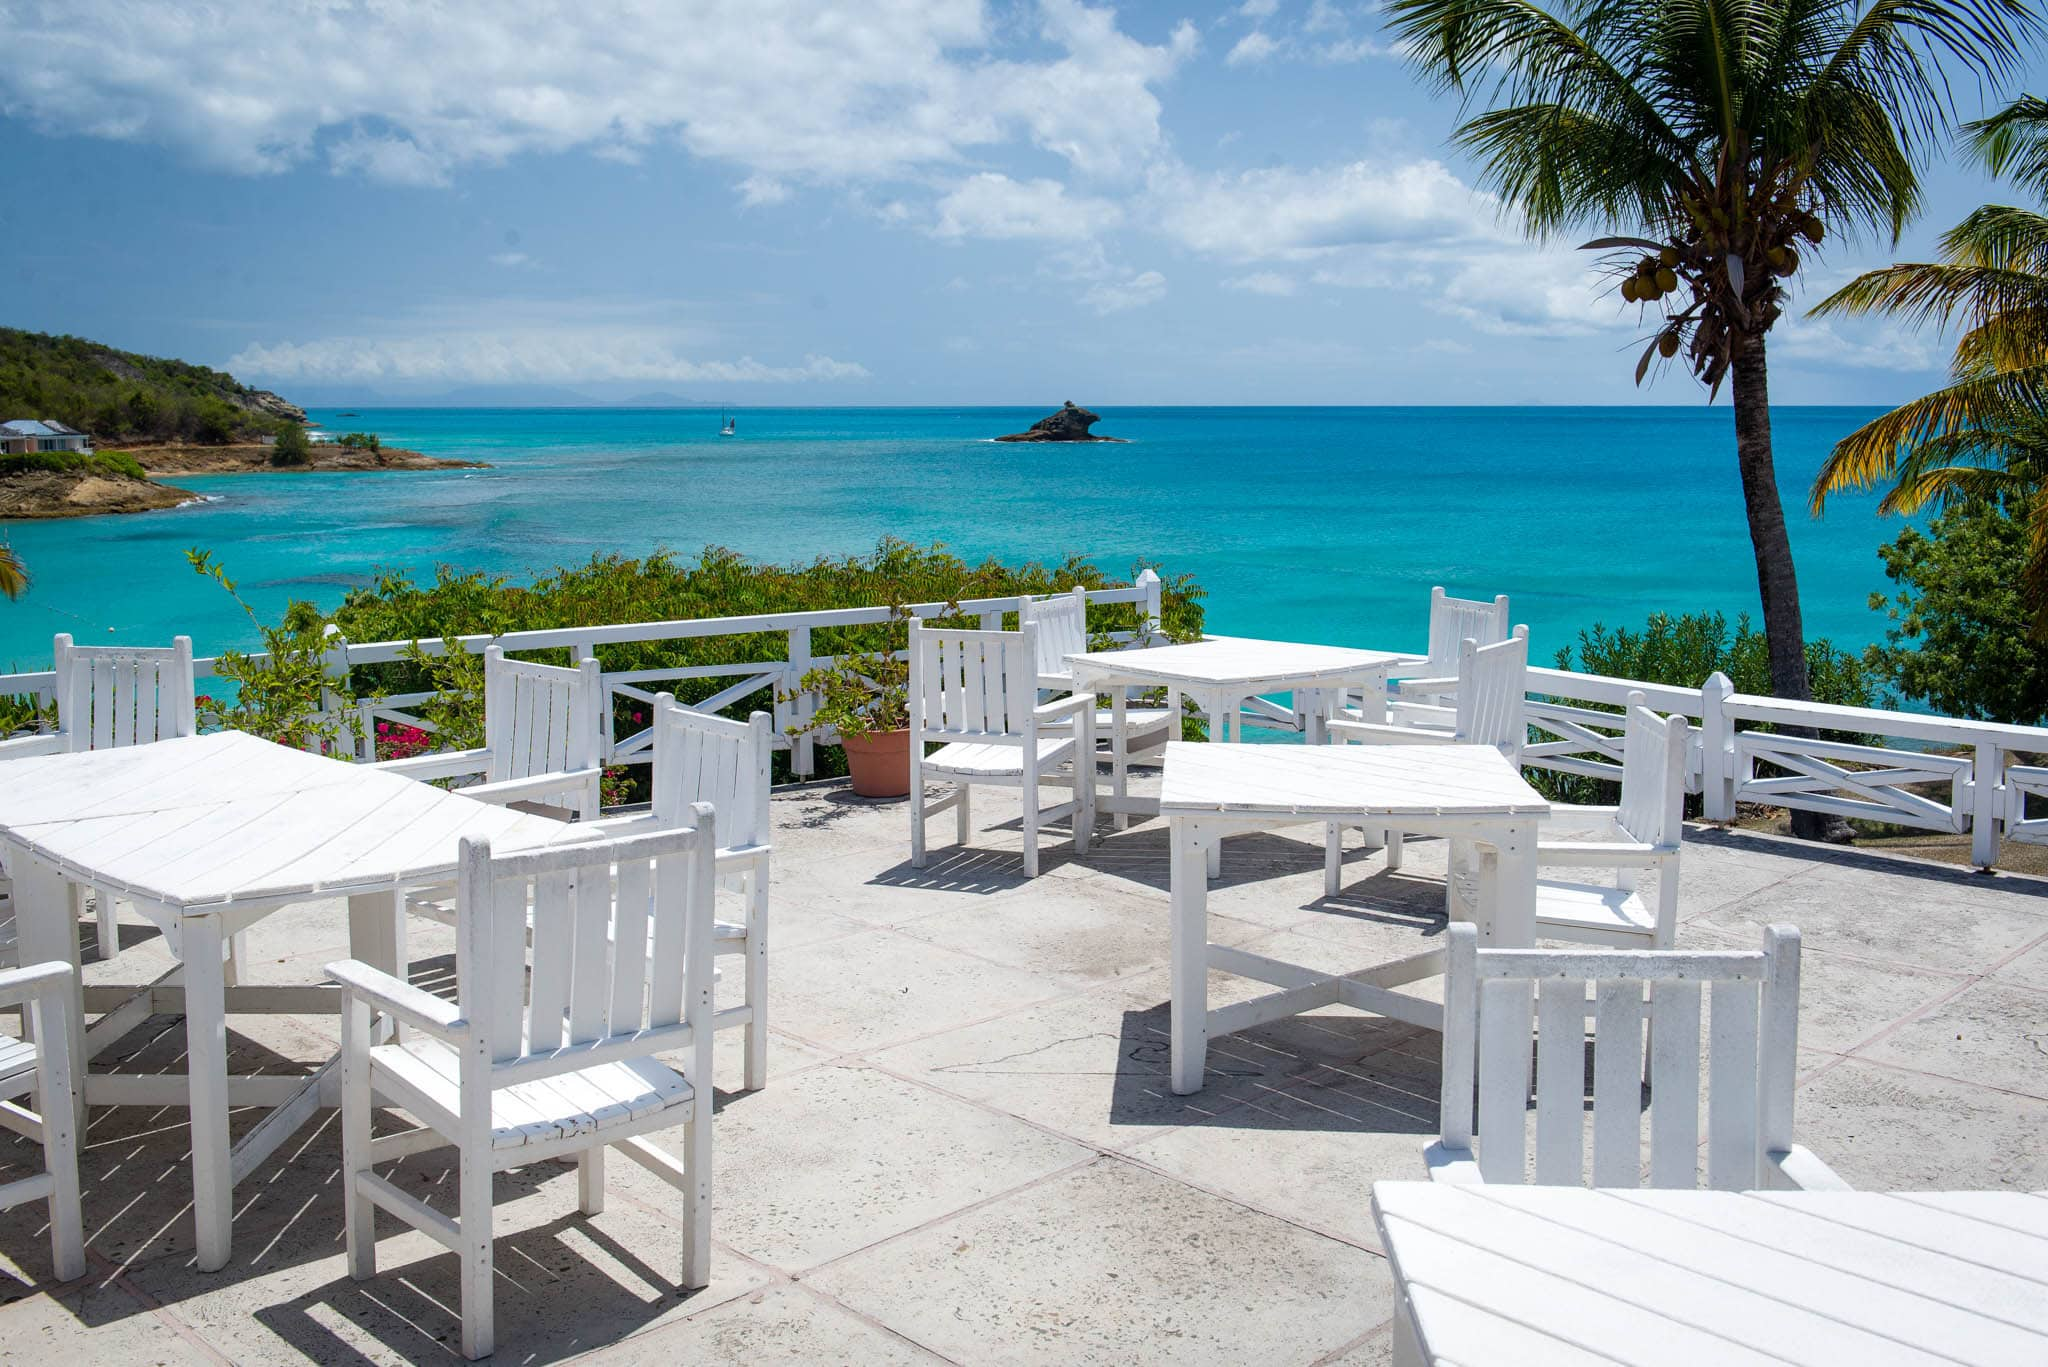 The resort has two restaurants on property and is happy to shuttle you to other nearby resorts for additional options.